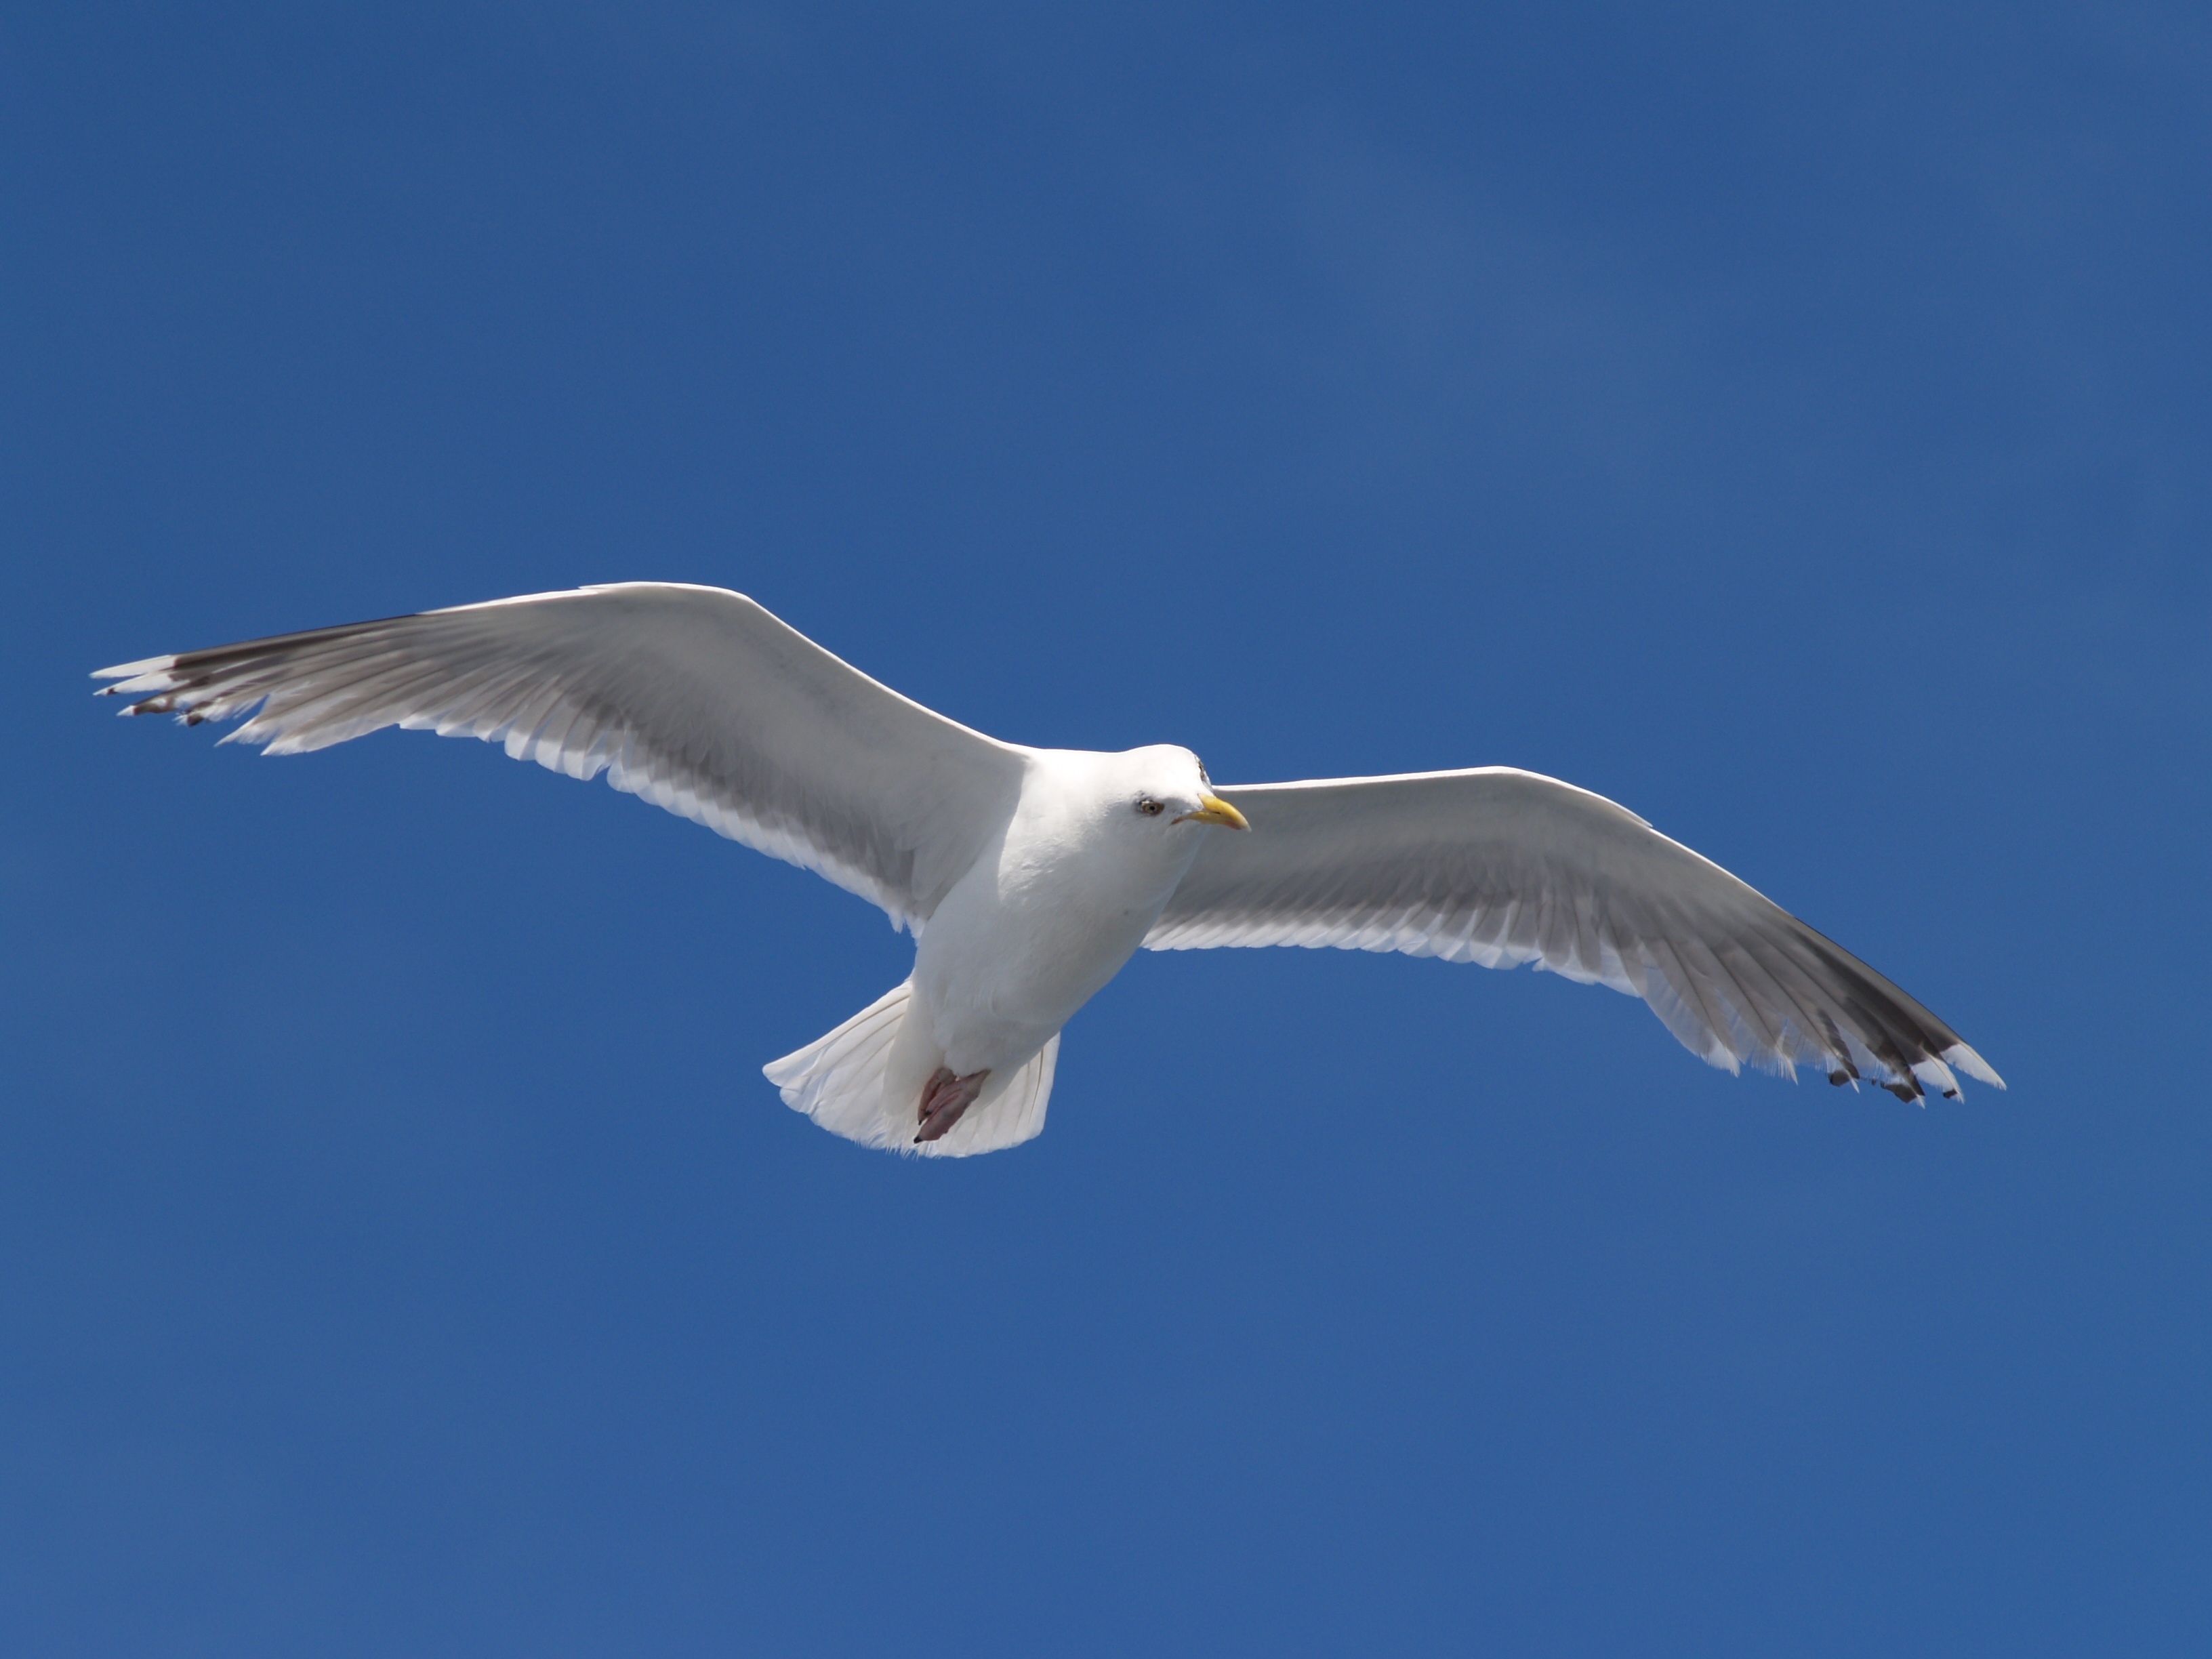 Fileseagull flying 5g wikimedia commons fileseagull flying 5g altavistaventures Image collections